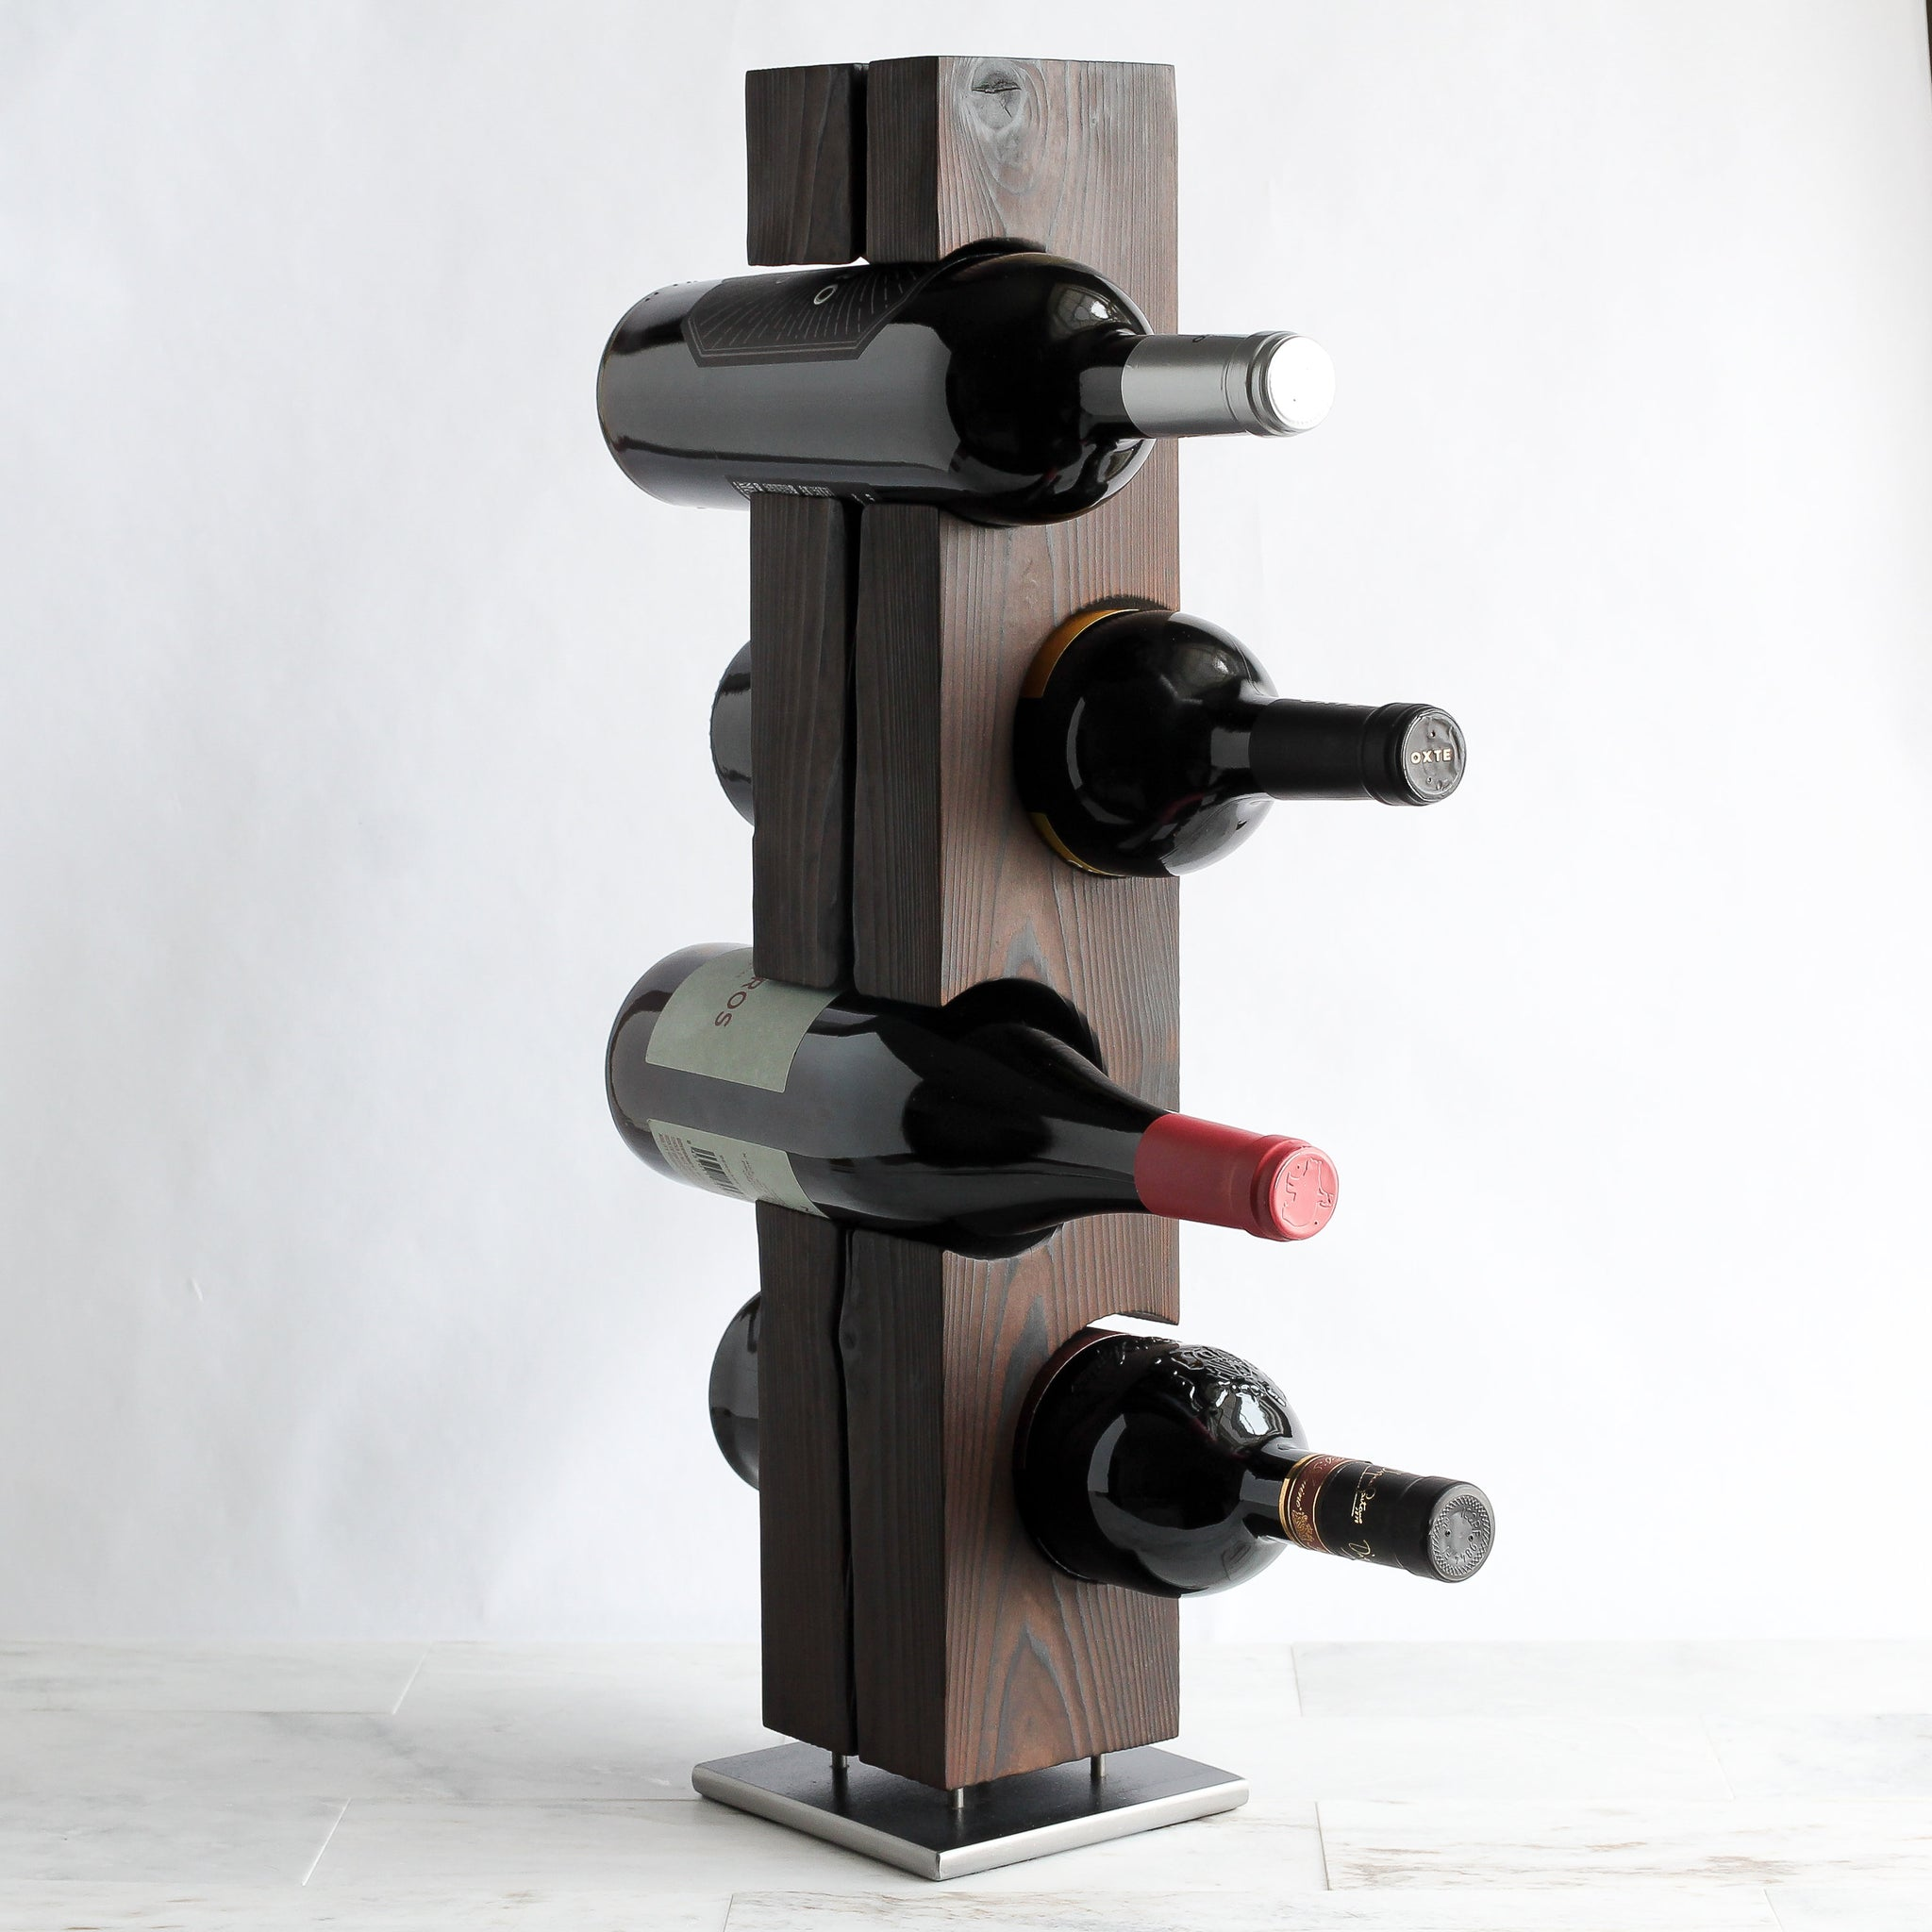 Shou Sugi Ban Tabletop Wine Rack, Charred Cedar with Welded Steel Base